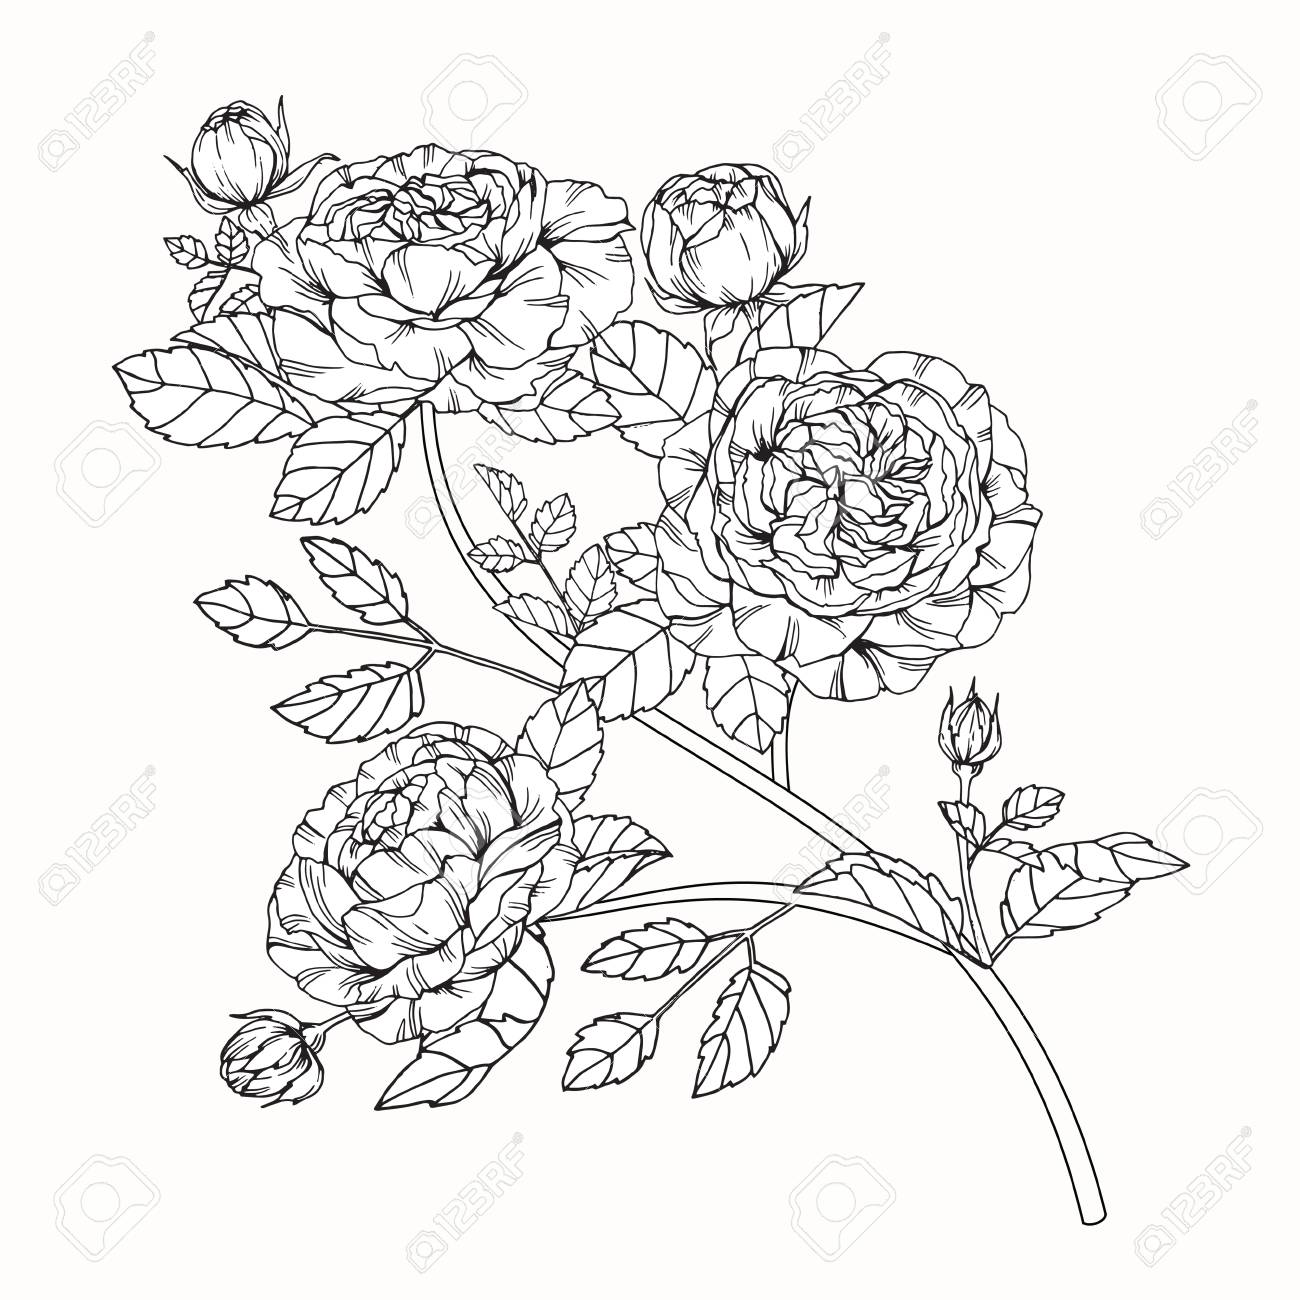 1300x1300 Rose Flowers Drawing And Sketch With Line Art On White Backgrounds